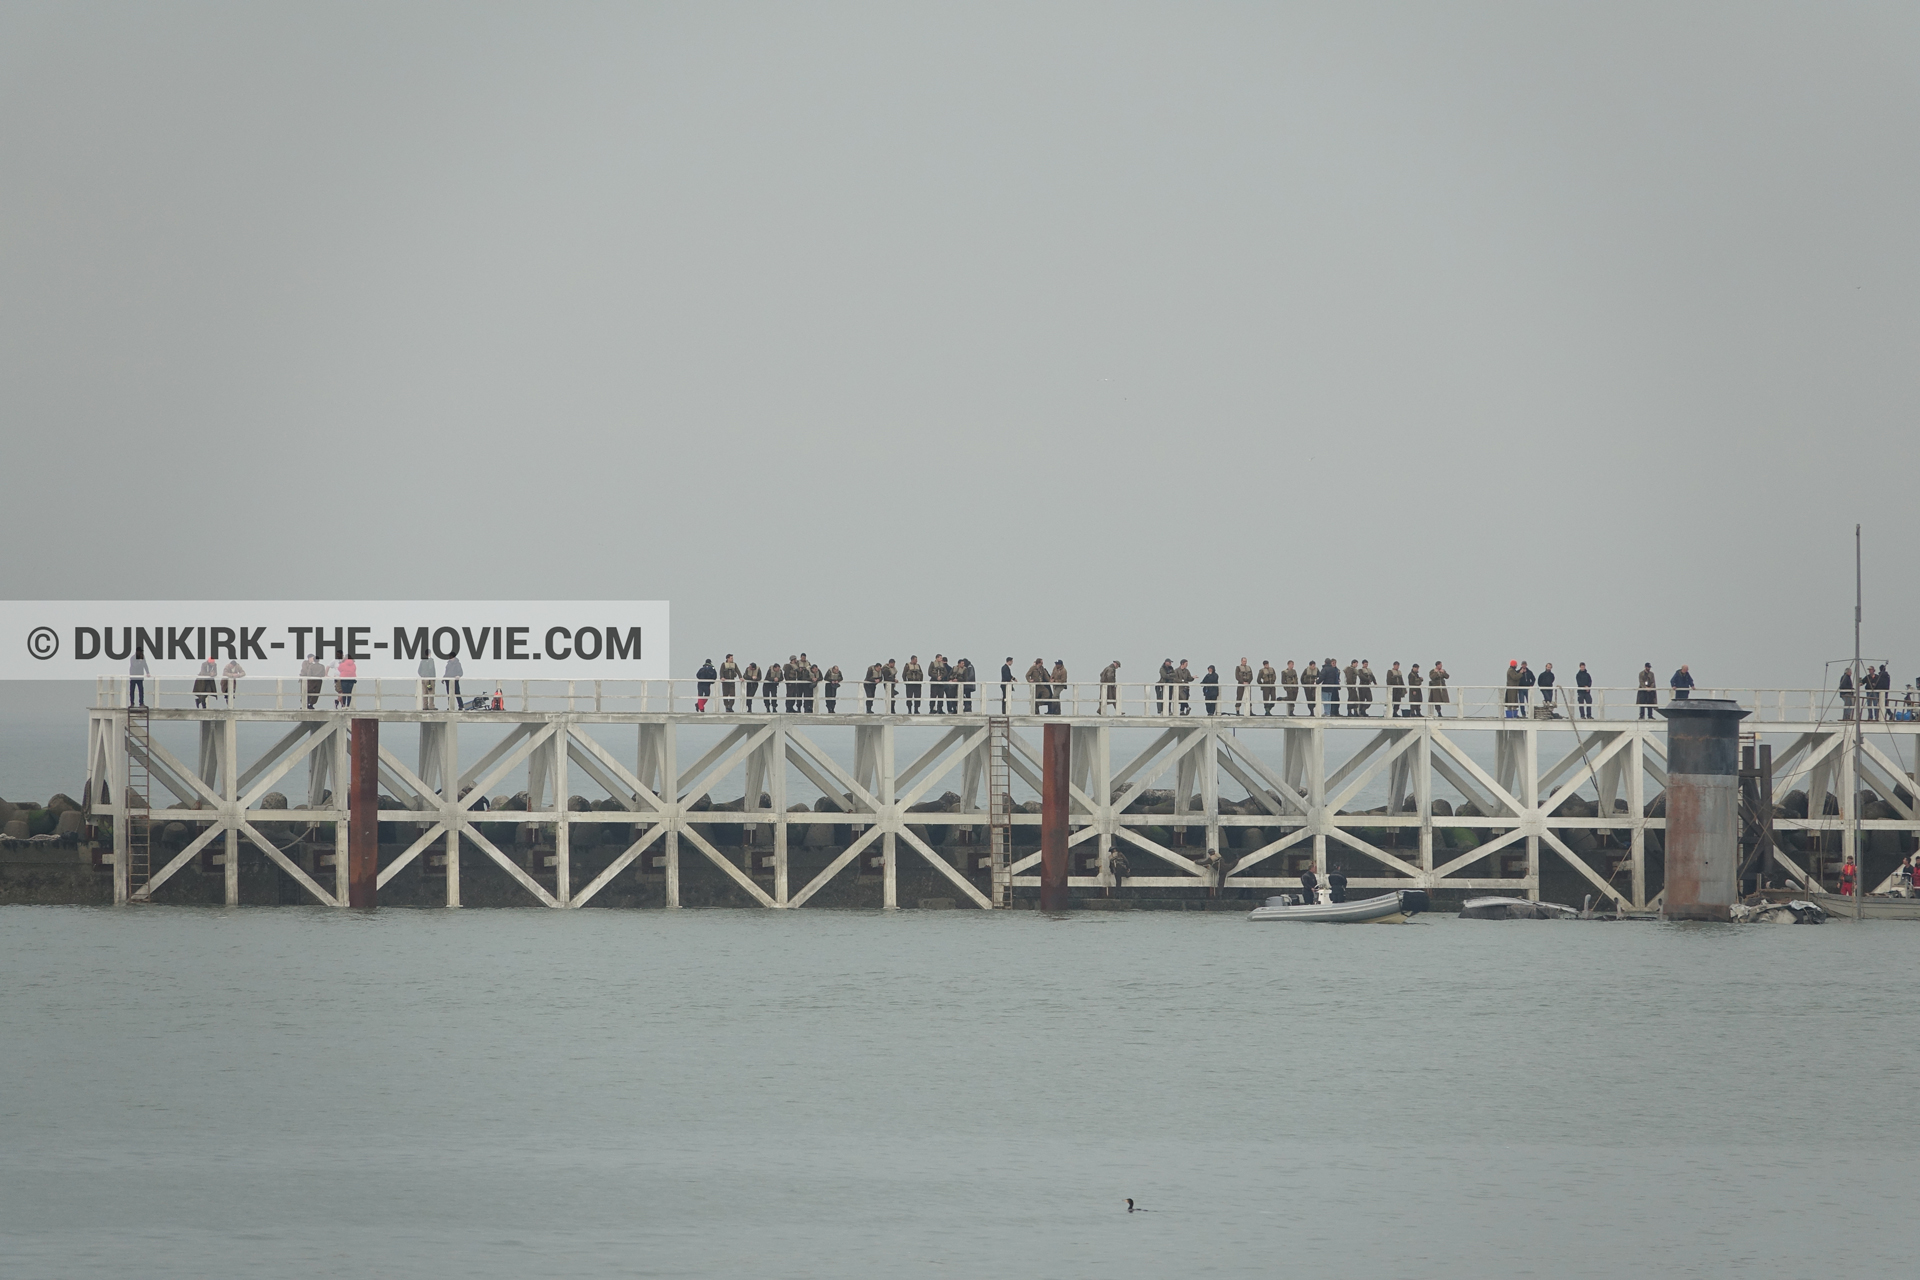 Picture with decor, EST pier,  from behind the scene of the Dunkirk movie by Nolan